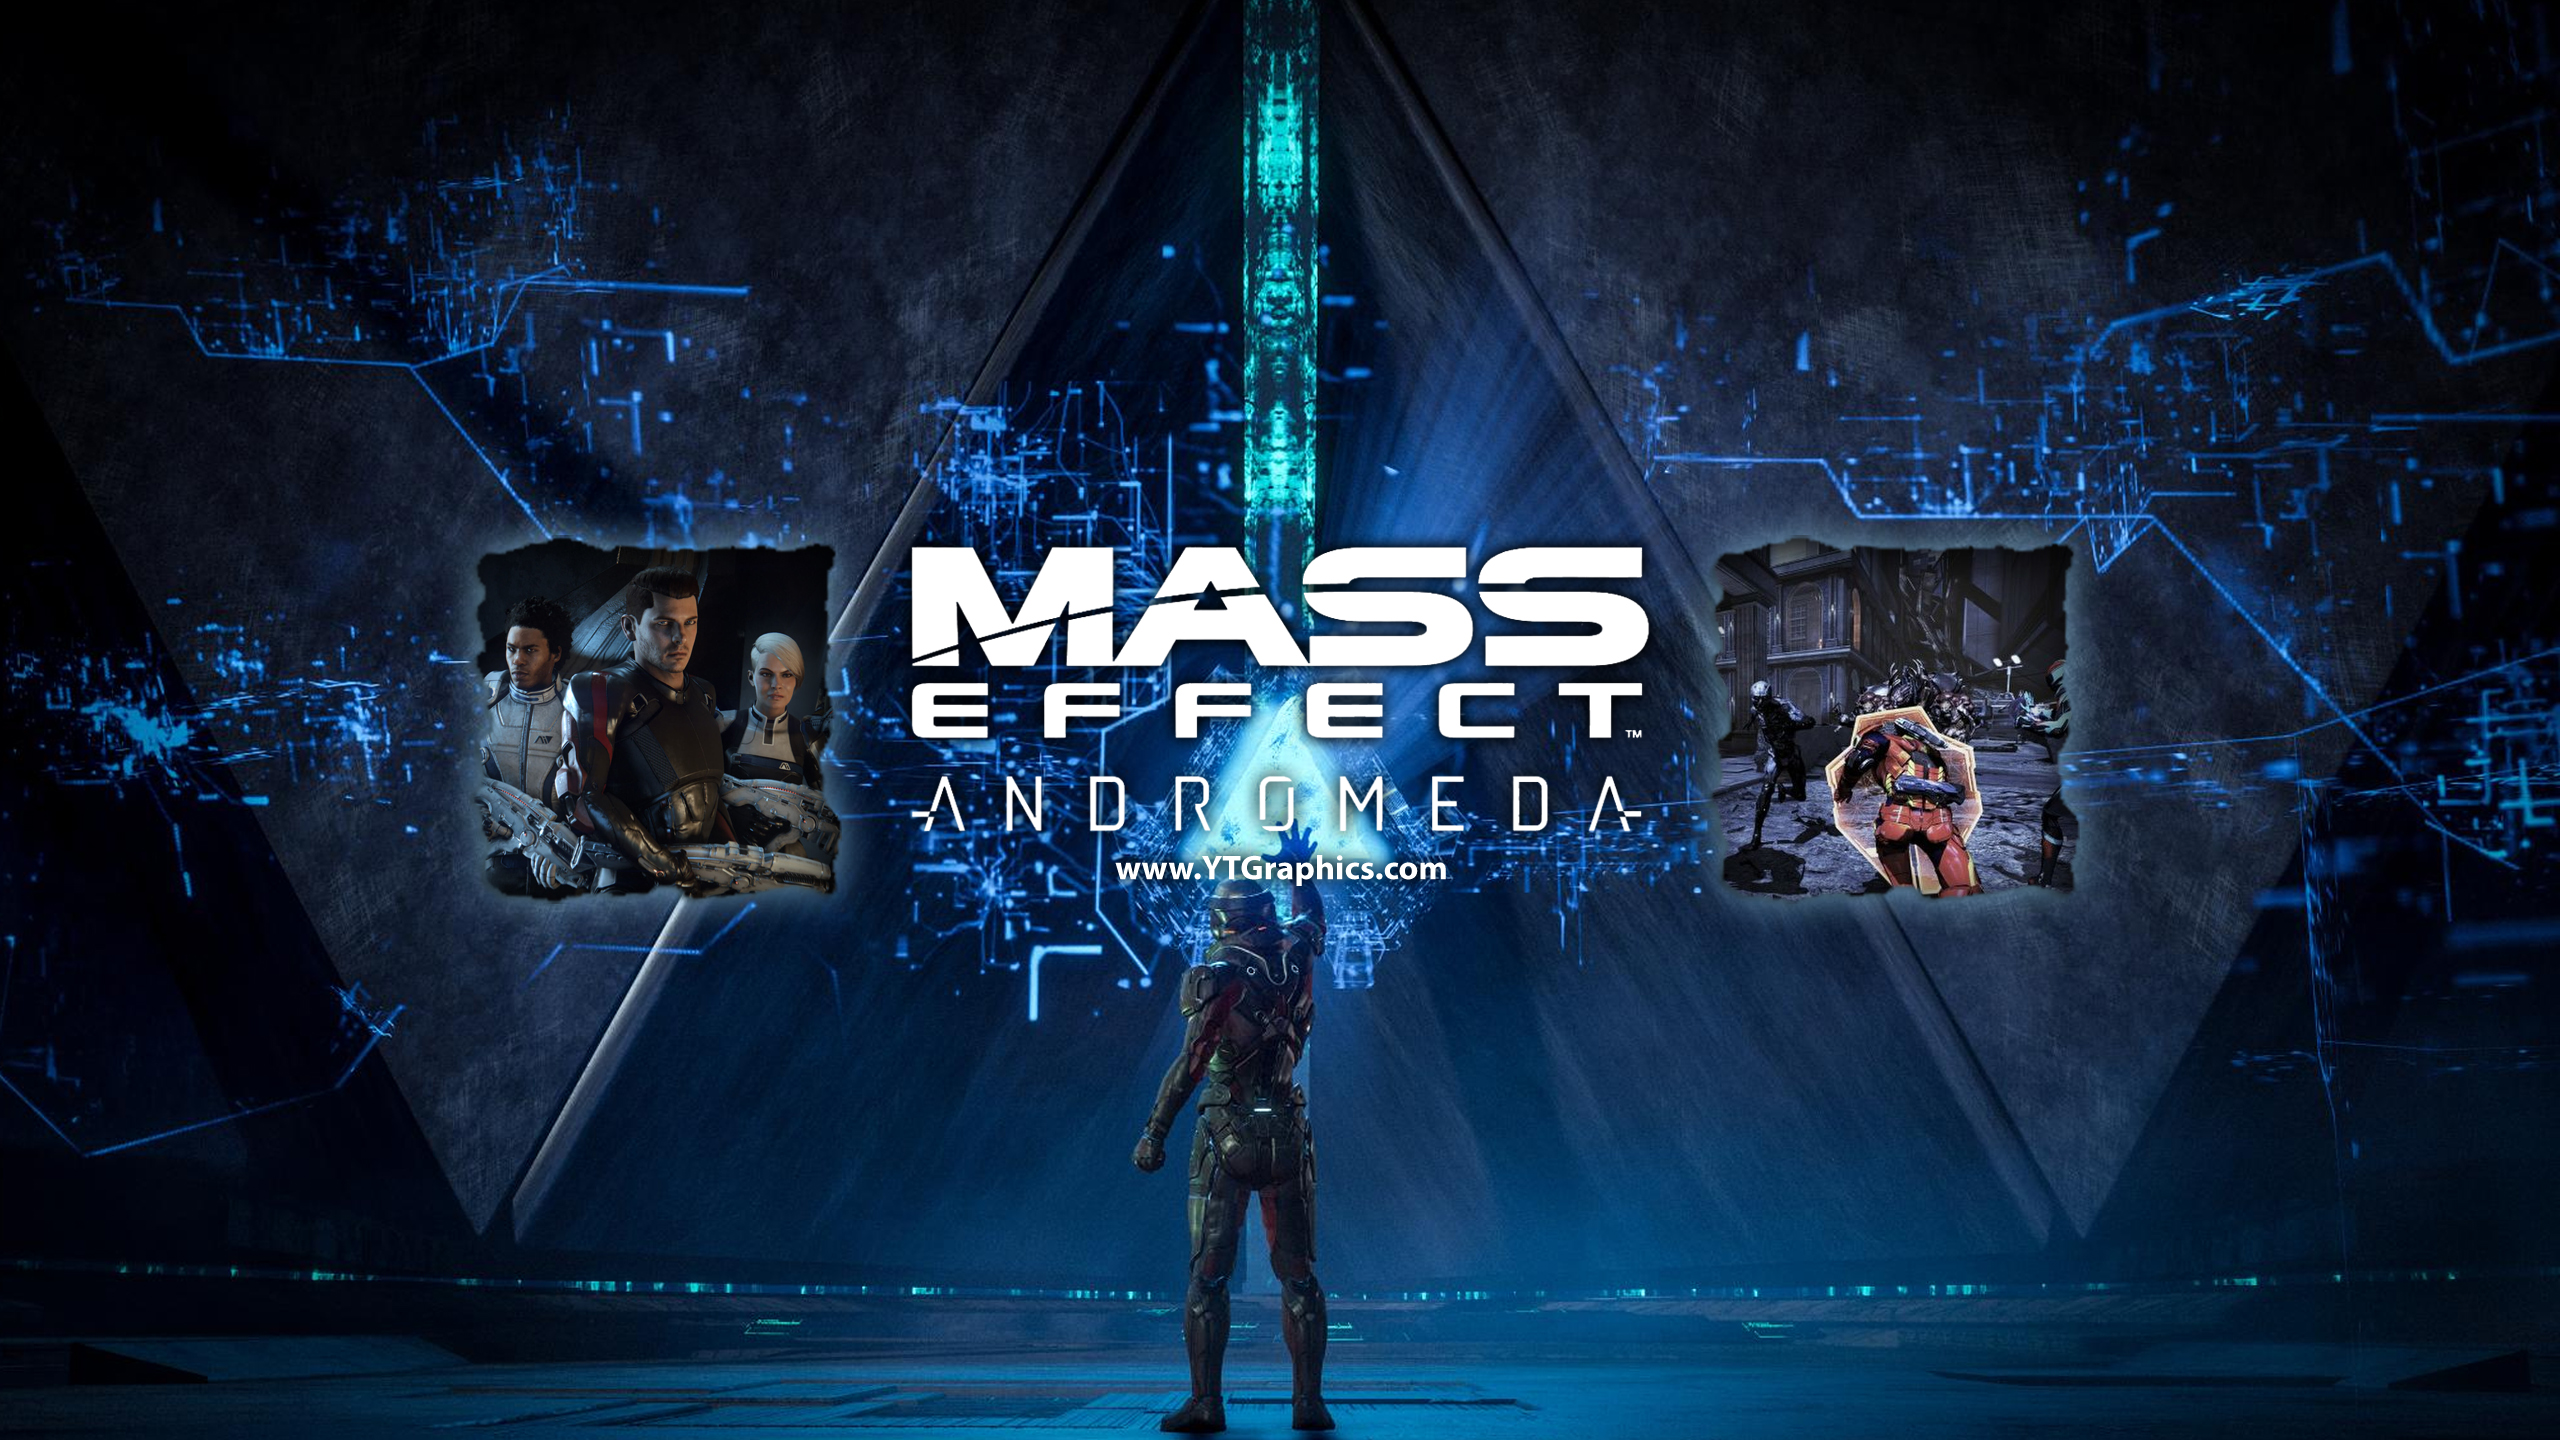 Mass Effect Andromeda YouTube Channel Art Banners